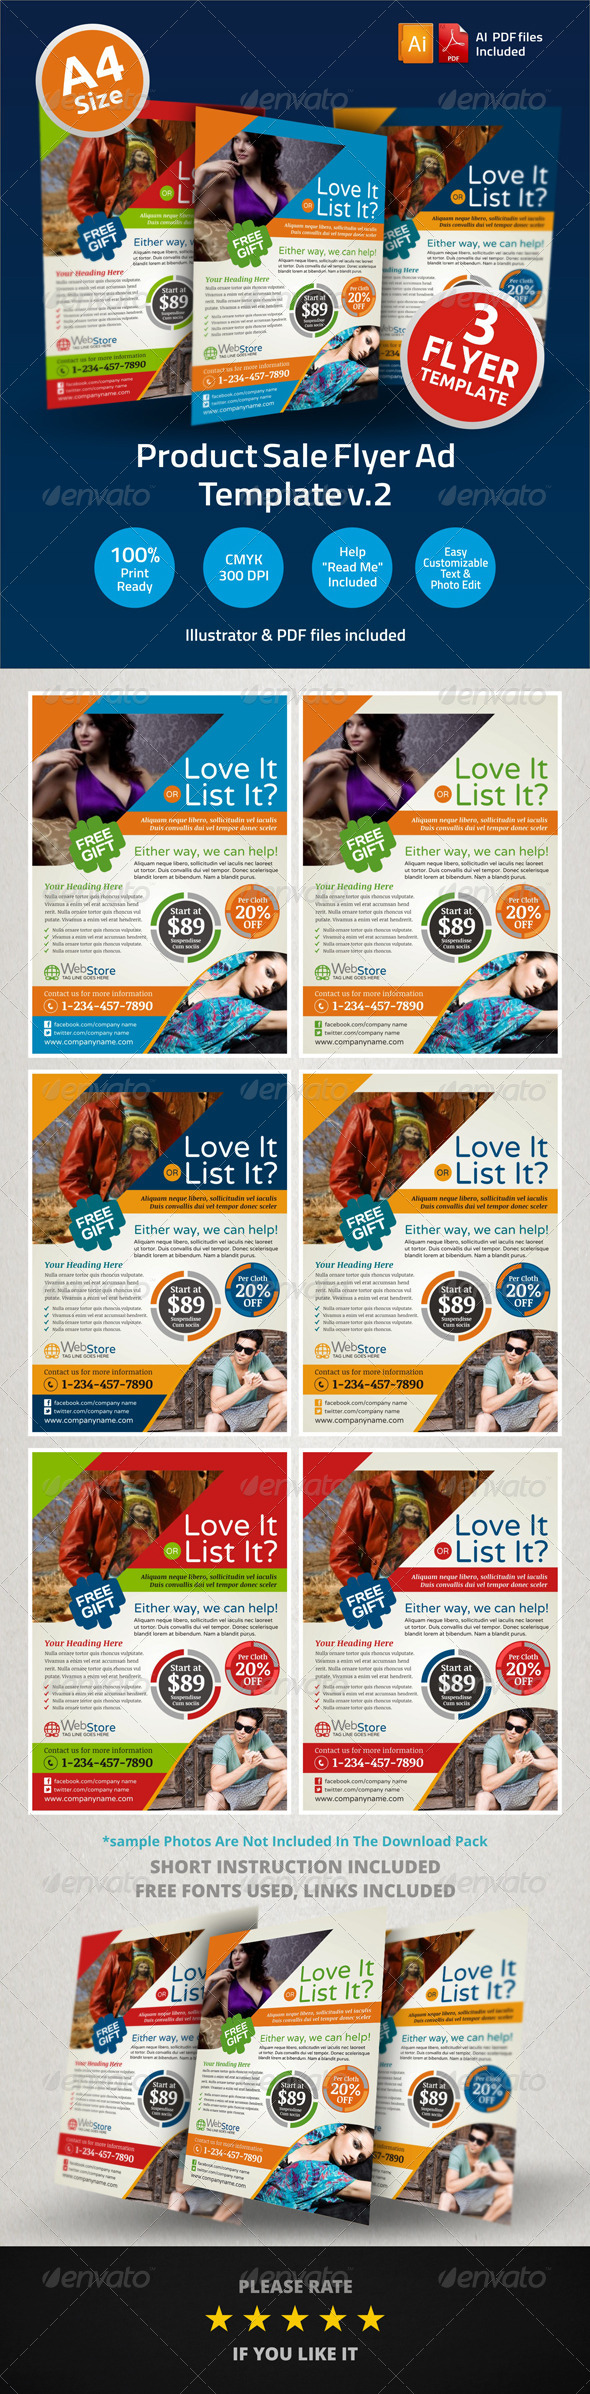 Product Sale Flyer Ad Template v2 - Commerce Flyers